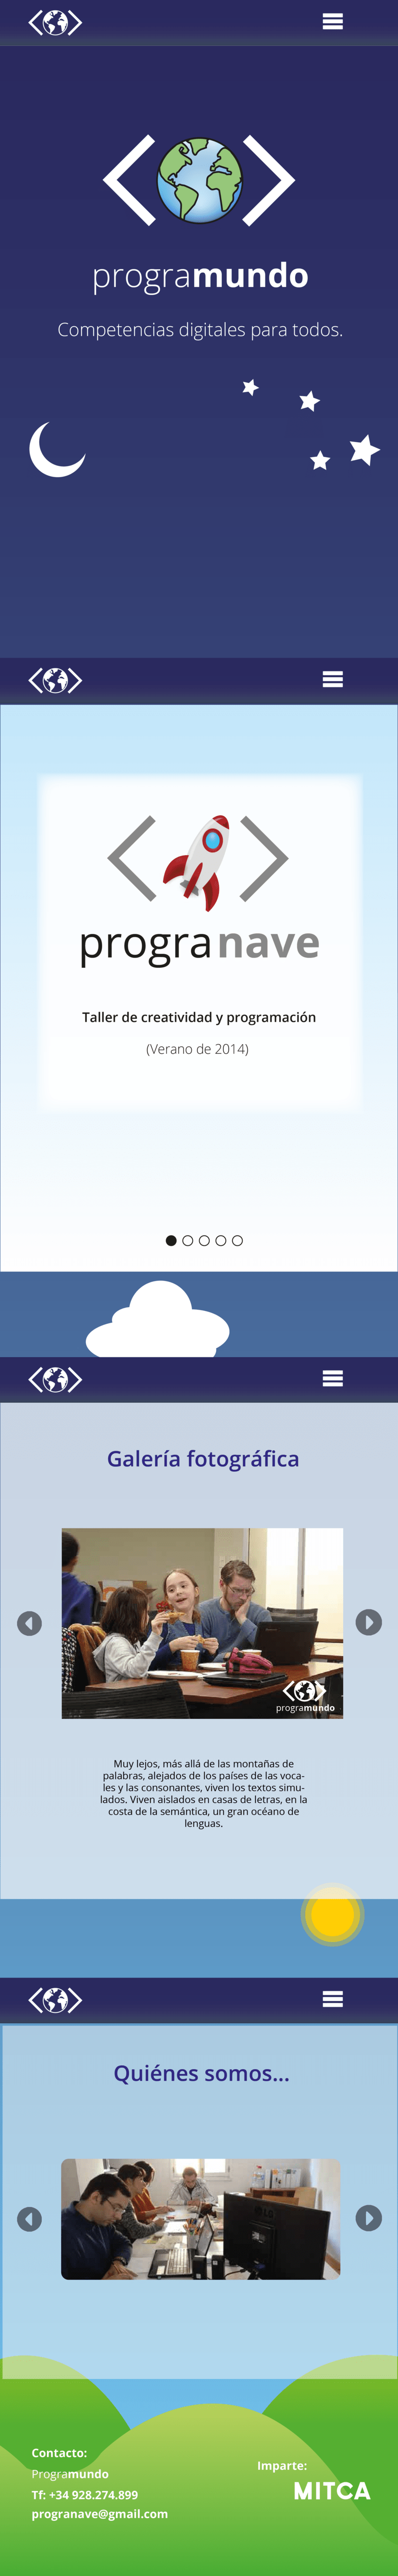 UI para diversas plataformas web / UI for several web platforms 0